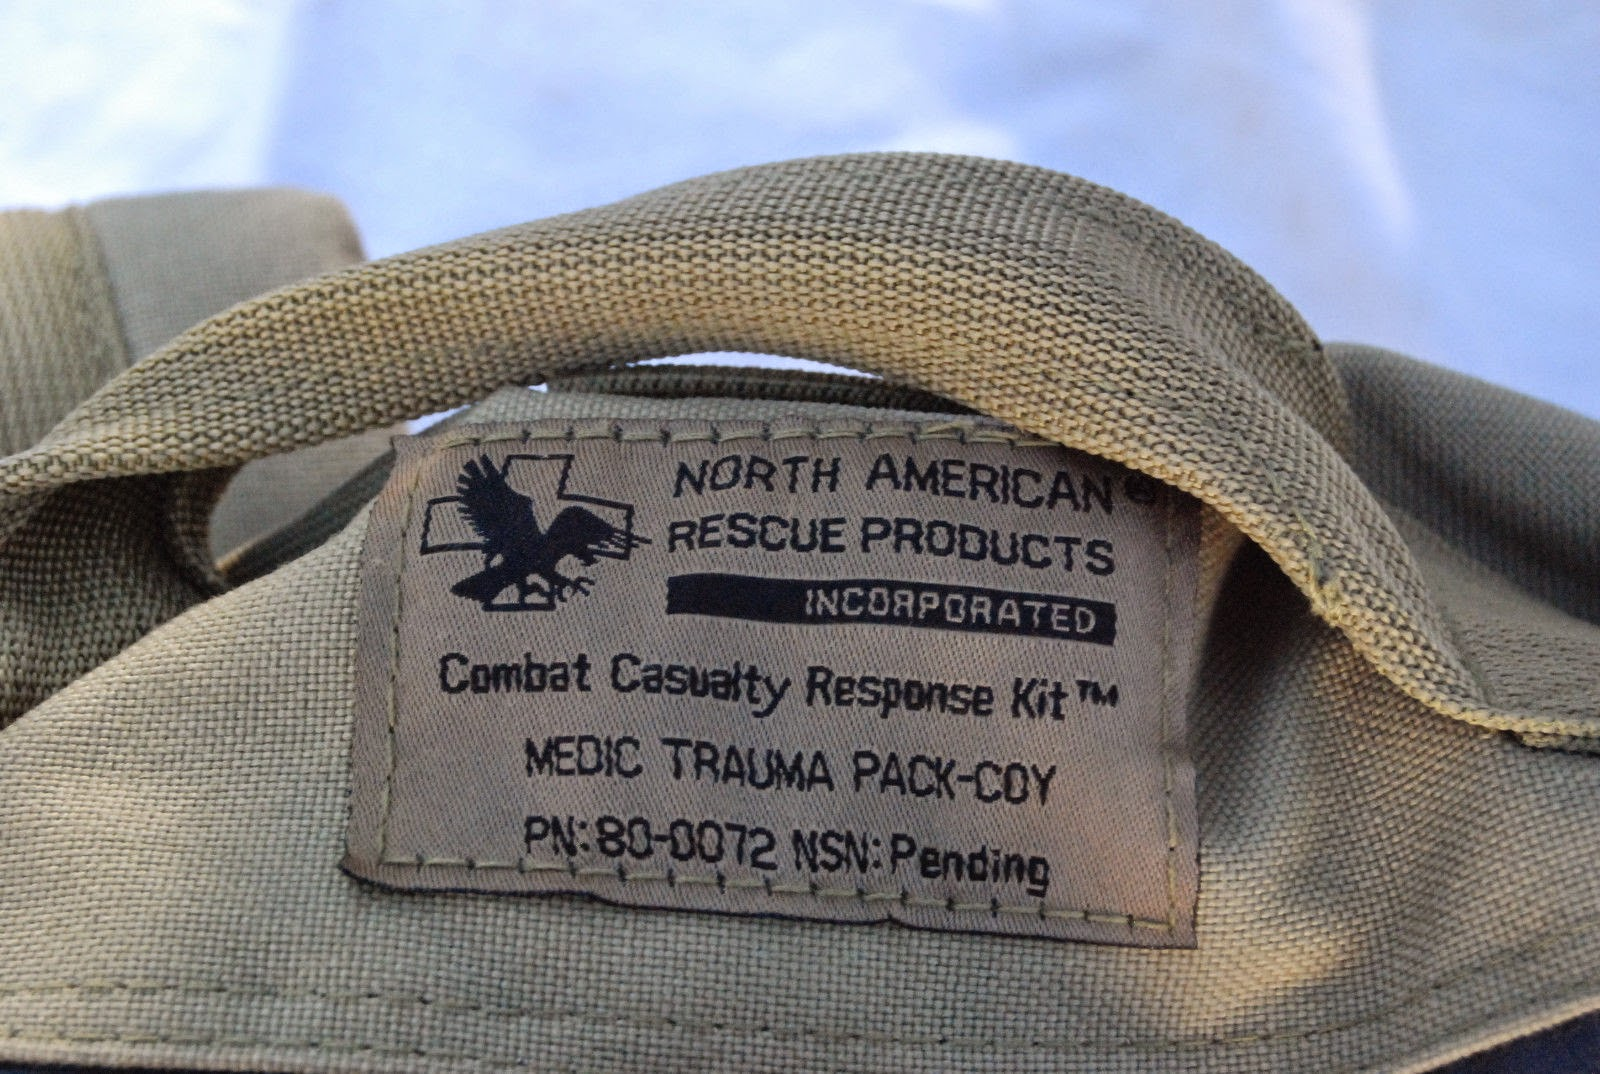 Webbingbabel: North American Rescue (NARP) Medic Trauma Pack